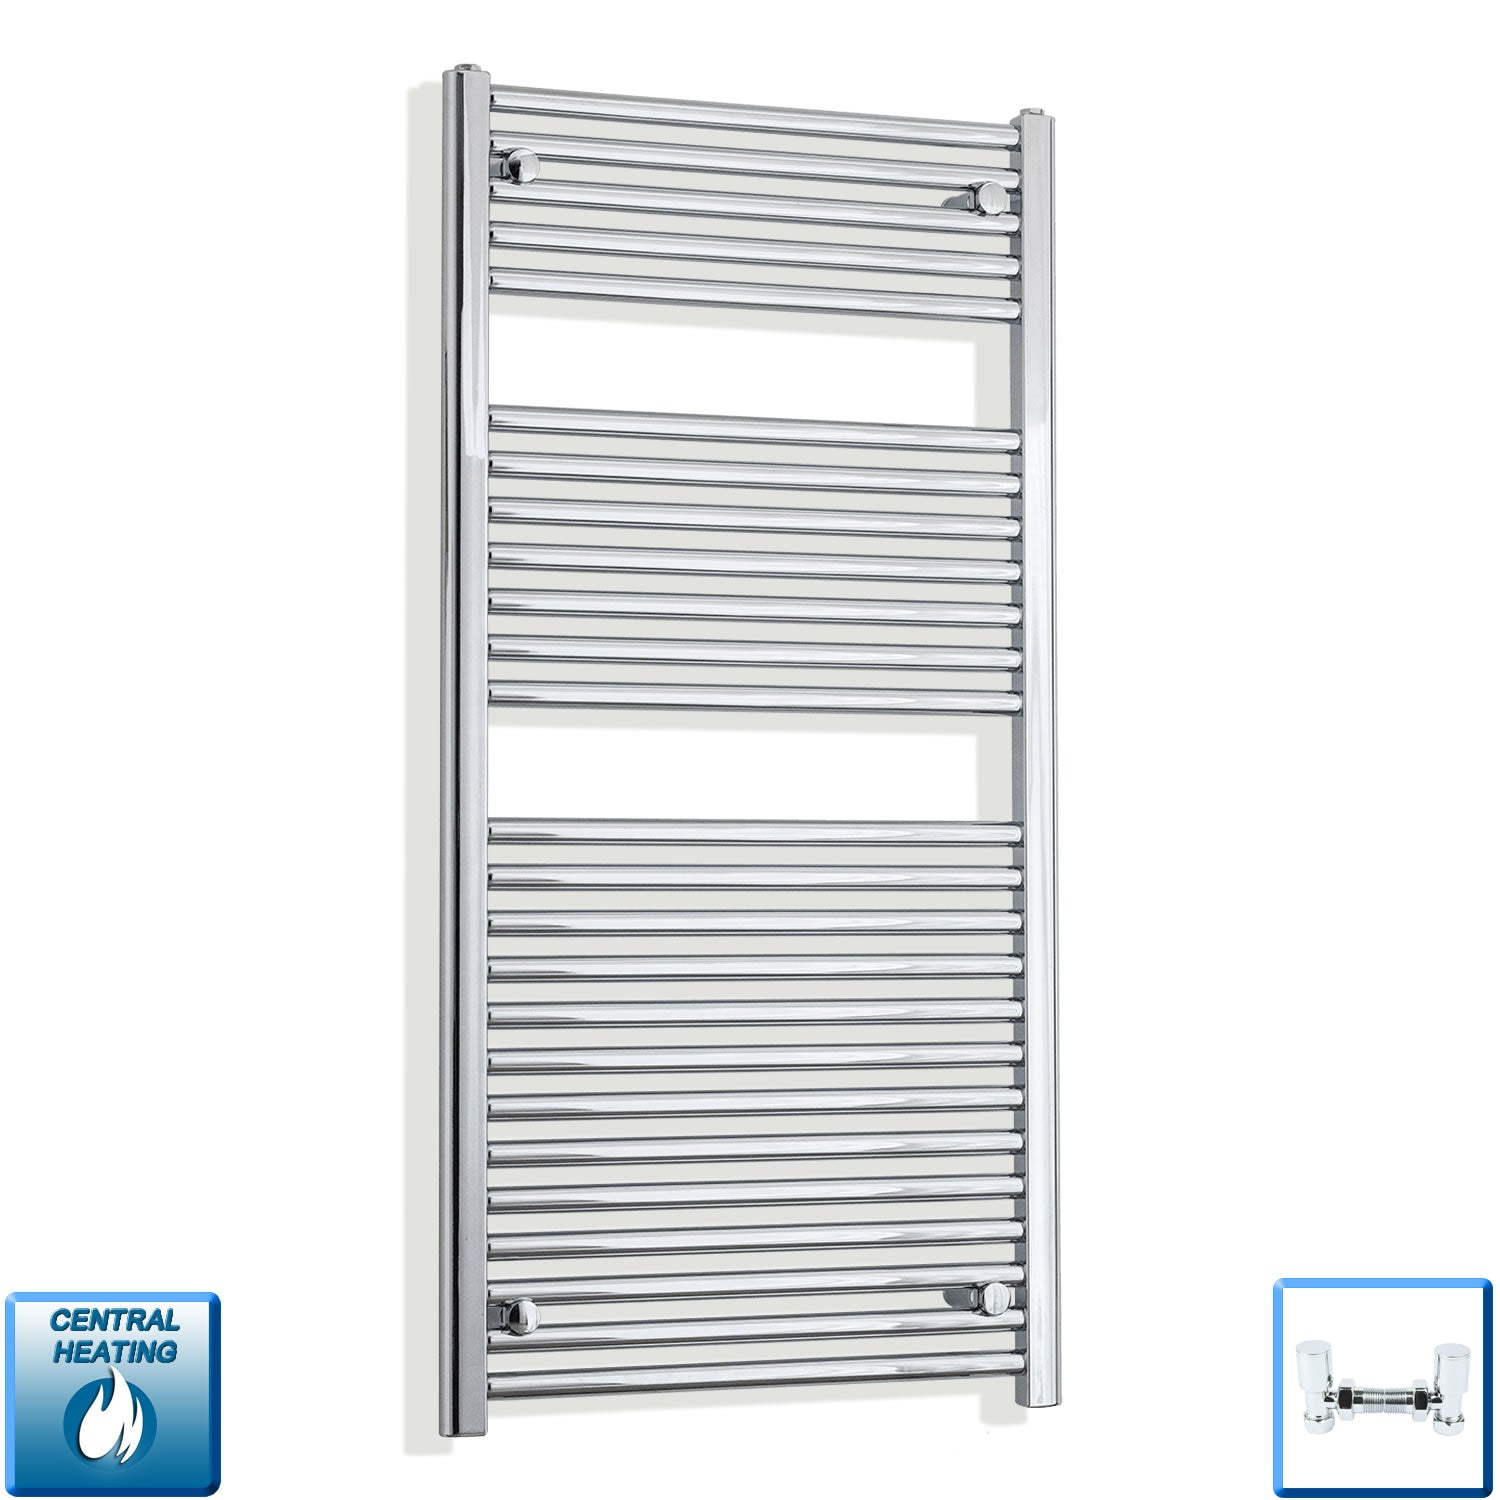 600mm Wide 1200mm High Chrome Towel Rail Radiator With Angled Valve